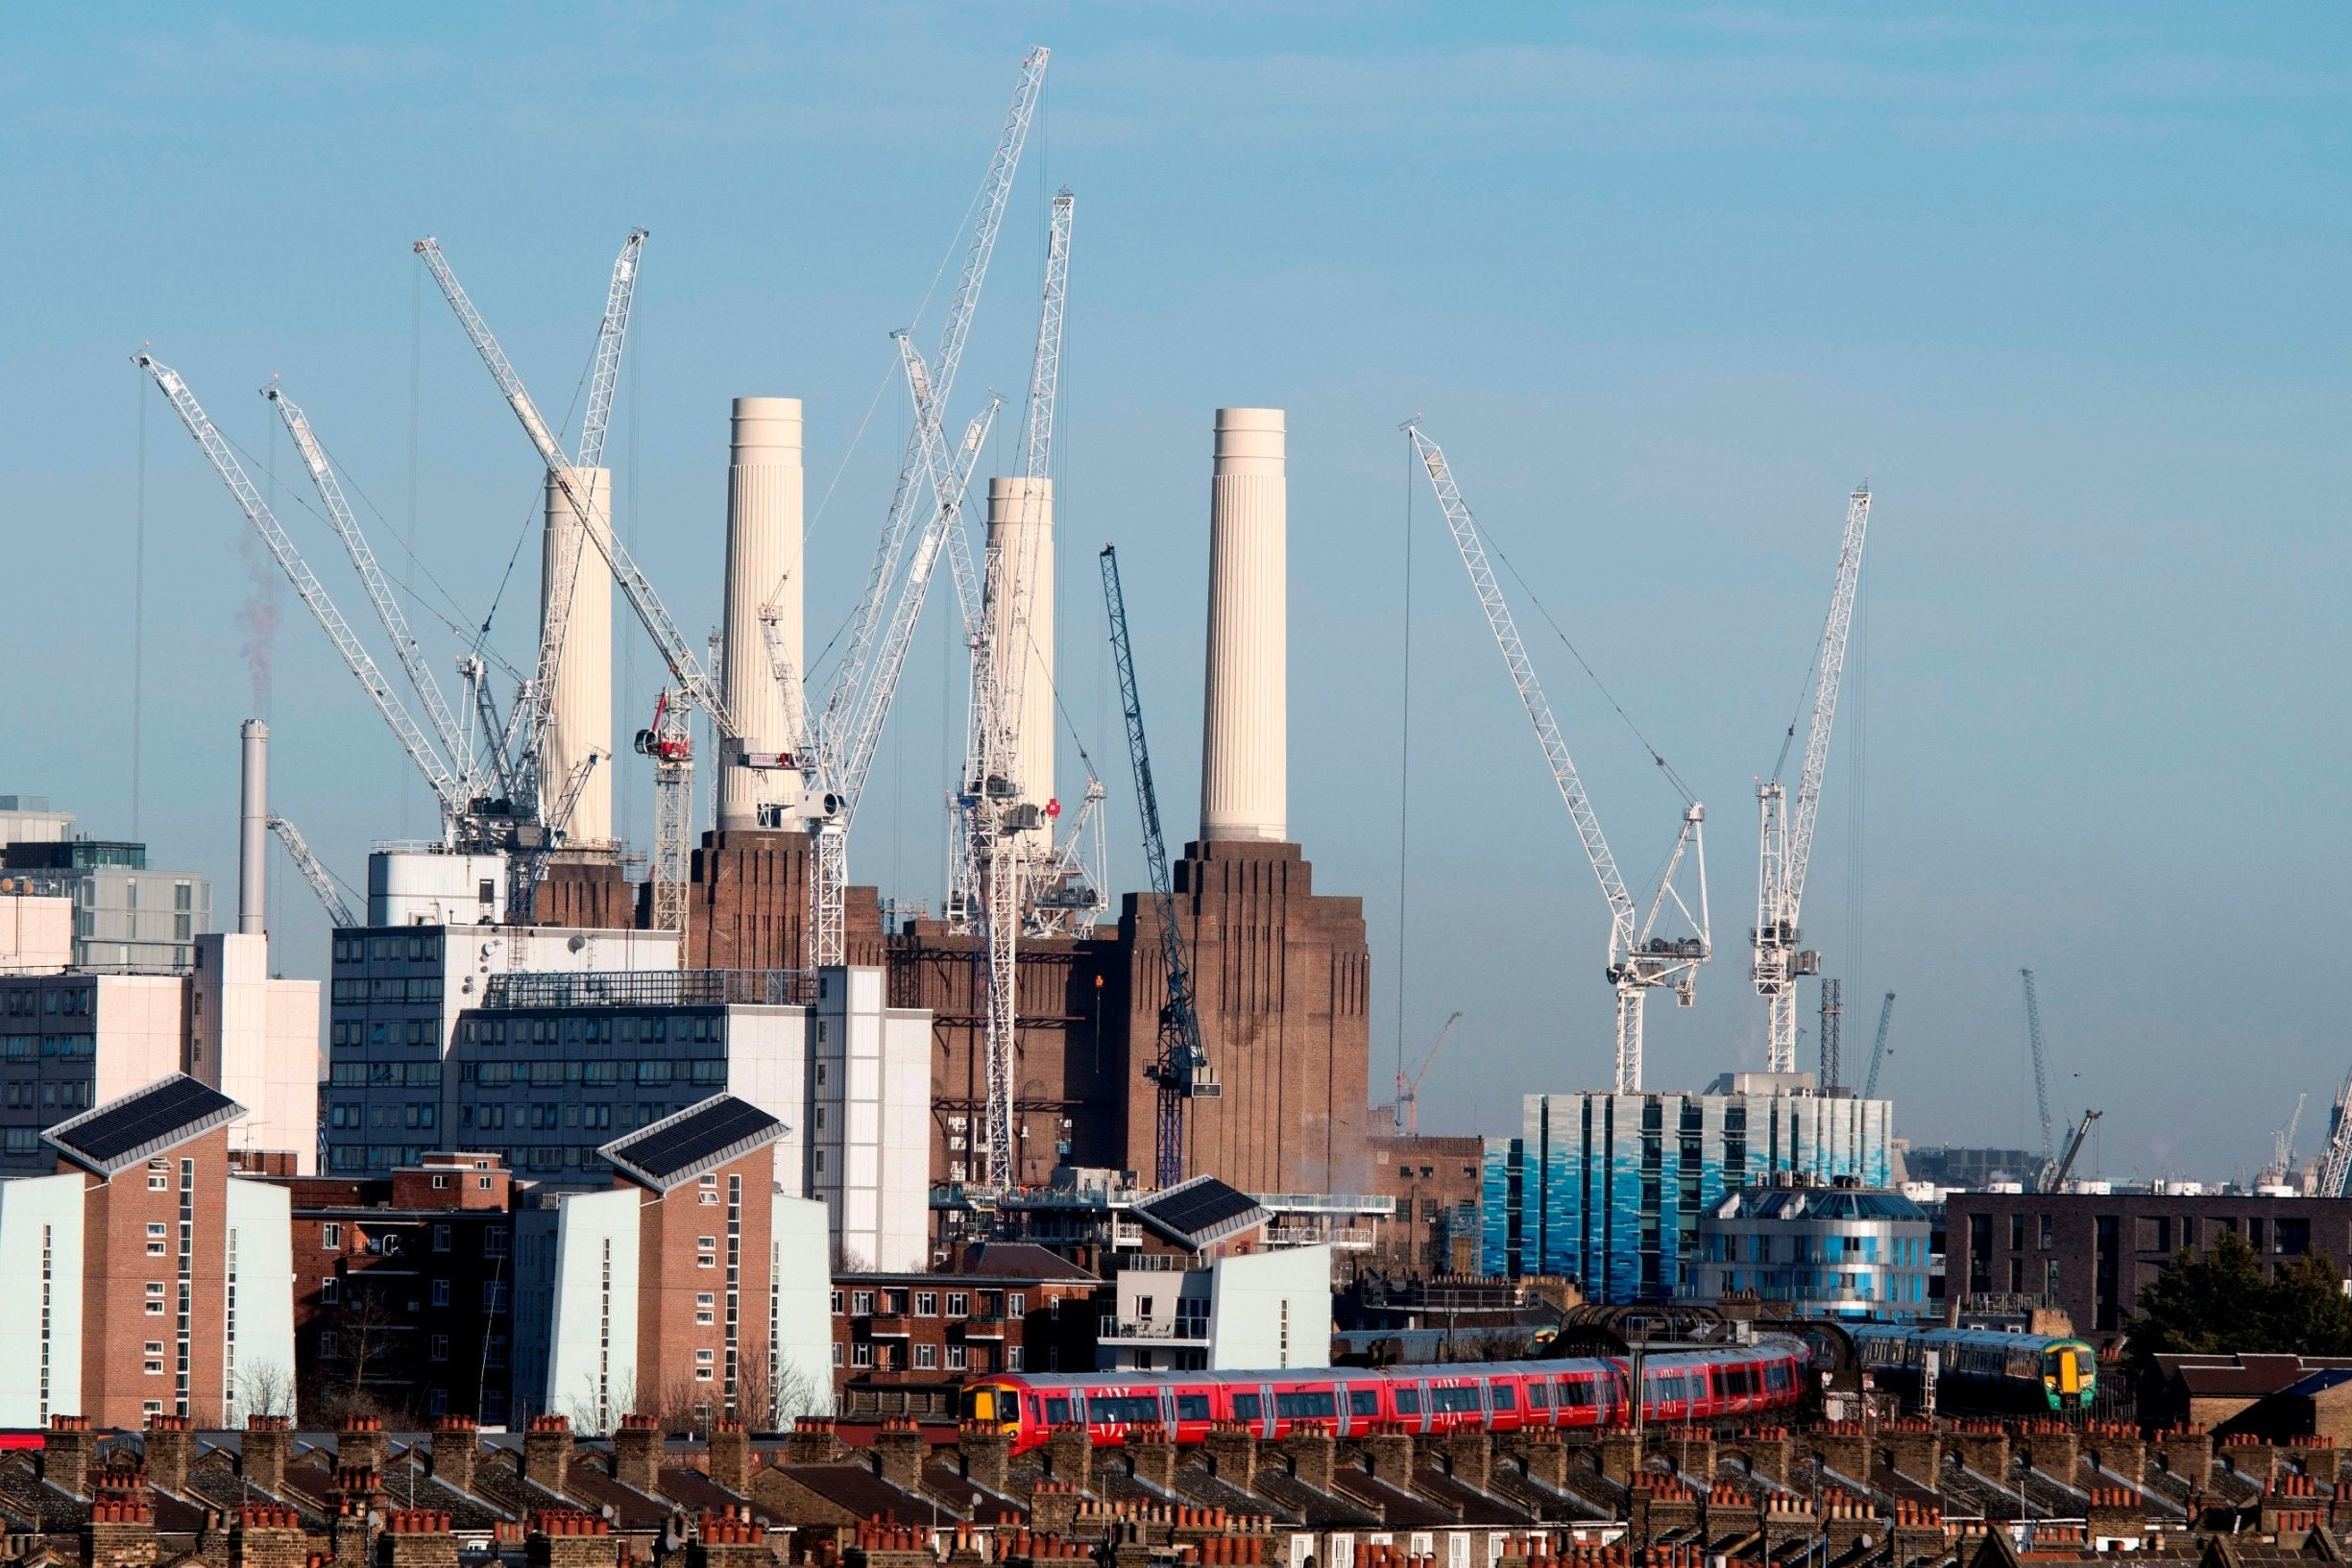 Battersea Power Station: Police close roads near London icon after 'security alert'